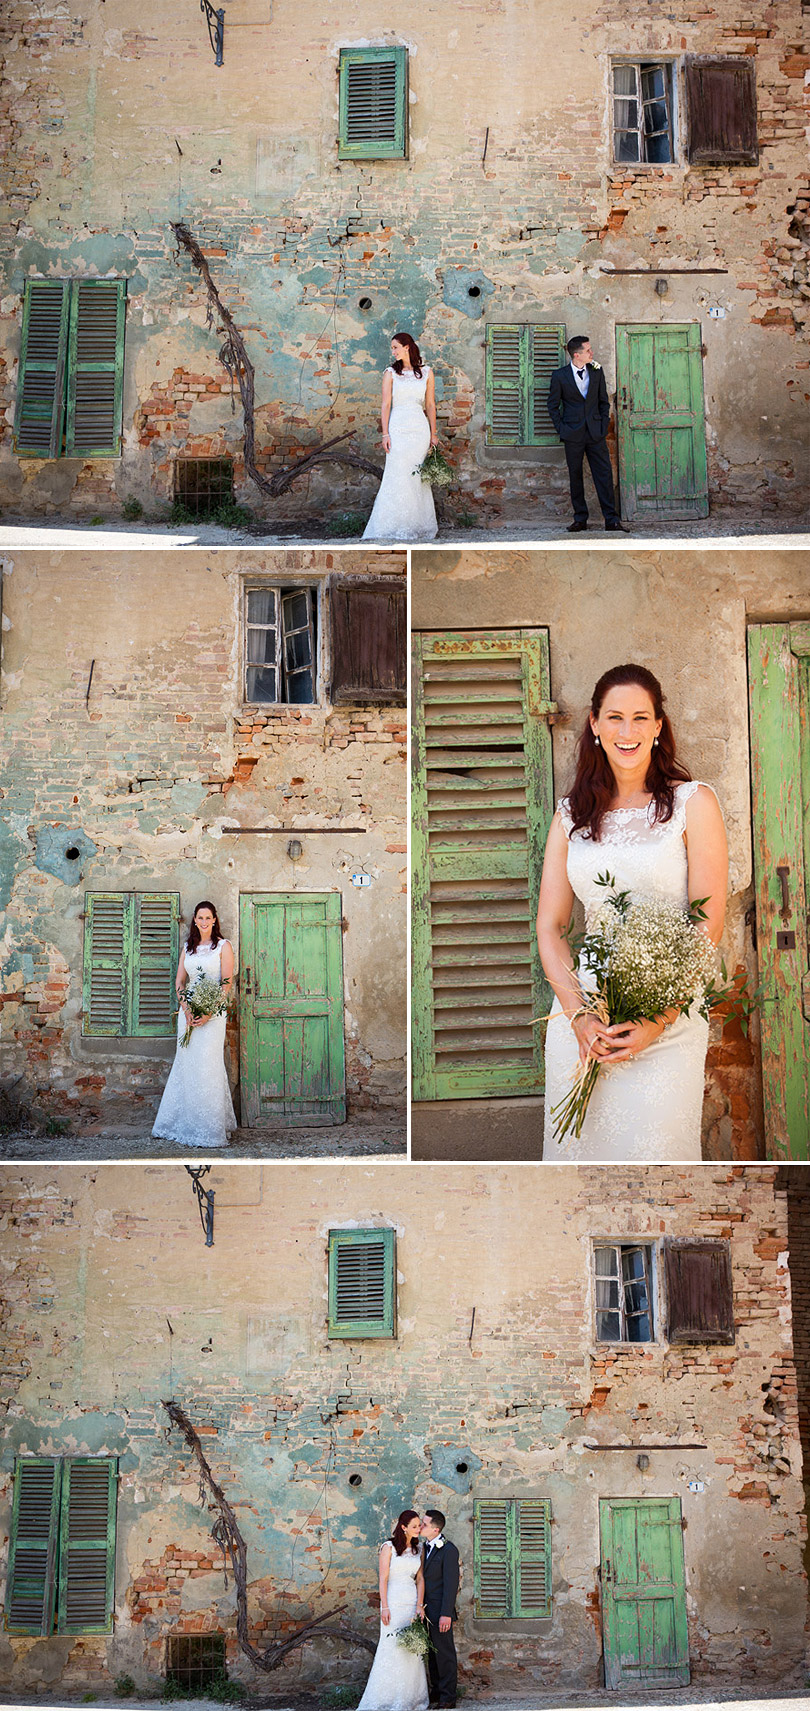 Castello-di-Cortanze-Italian-Wedding-LilyandFrankPhotography_22.jpg